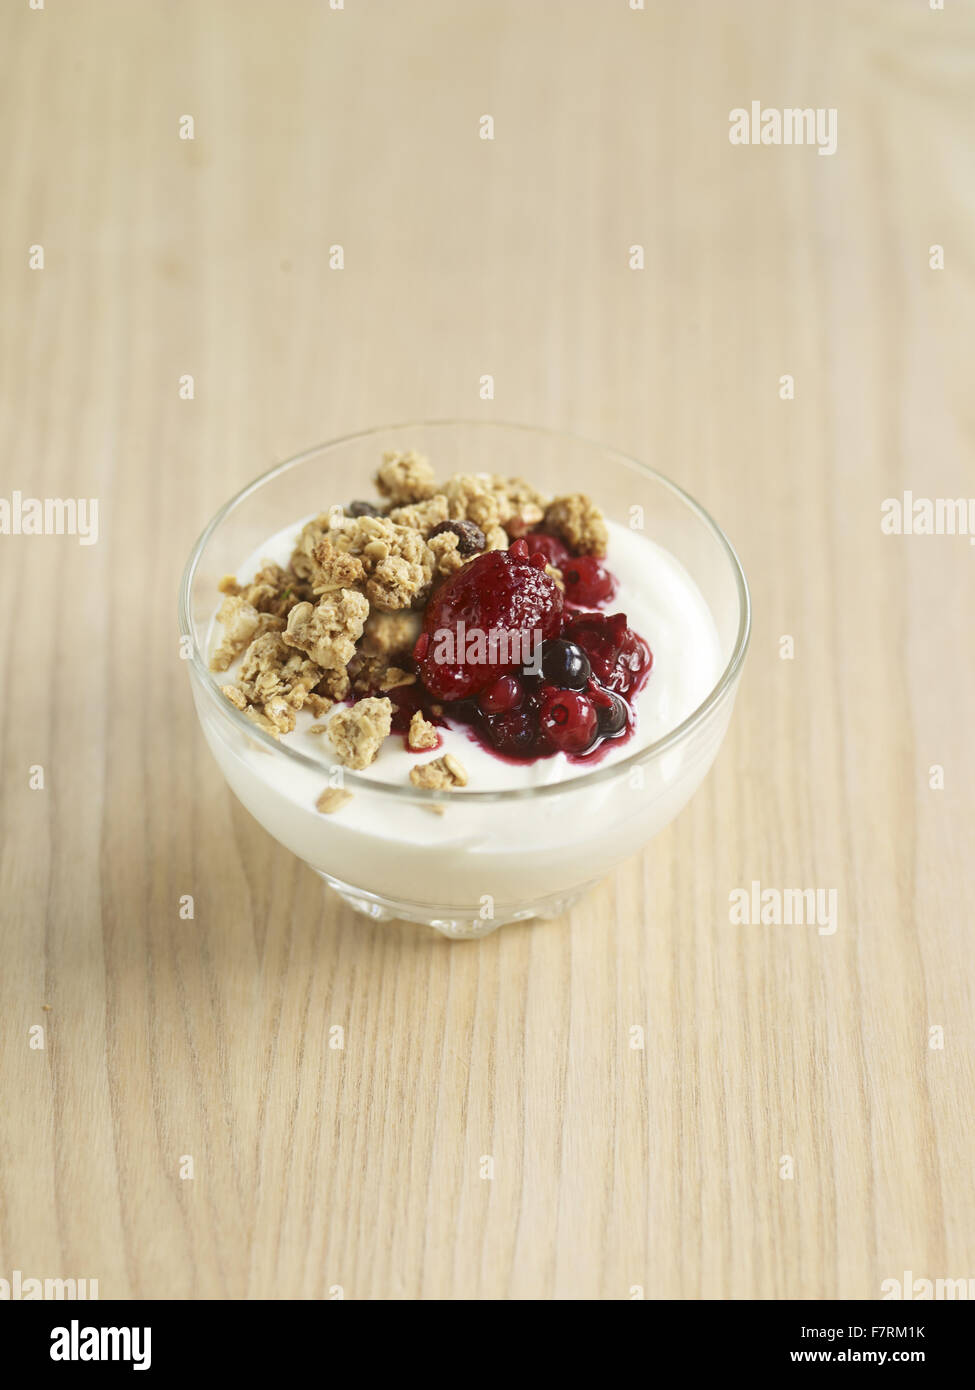 Yoghurt granola photographed for the 2015 National Trust Summer Cookbook. - Stock Image